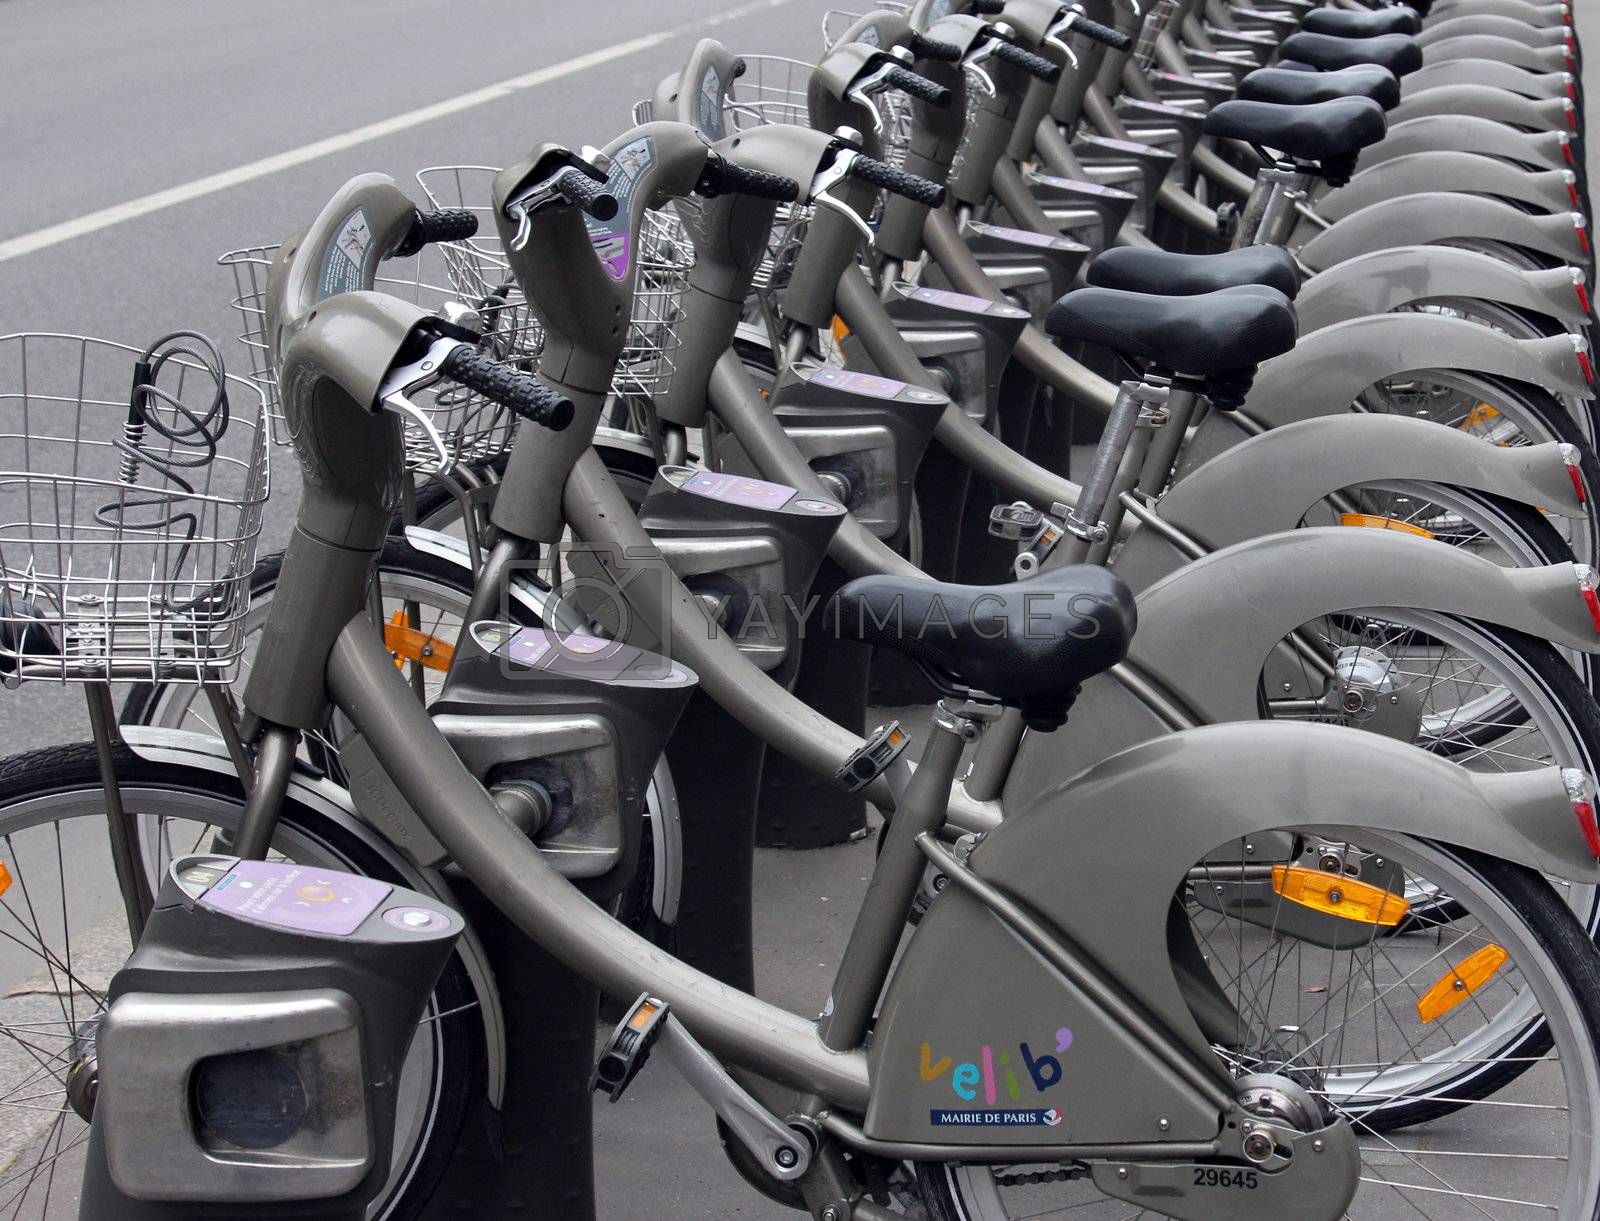 PARIS, FRANCE - NOVEMBER 07, 2012: Velib bycycles in the row on January 6, 2012 in Paris, France. Velib is a large-scale public bicycle sharing system in Paris, France.